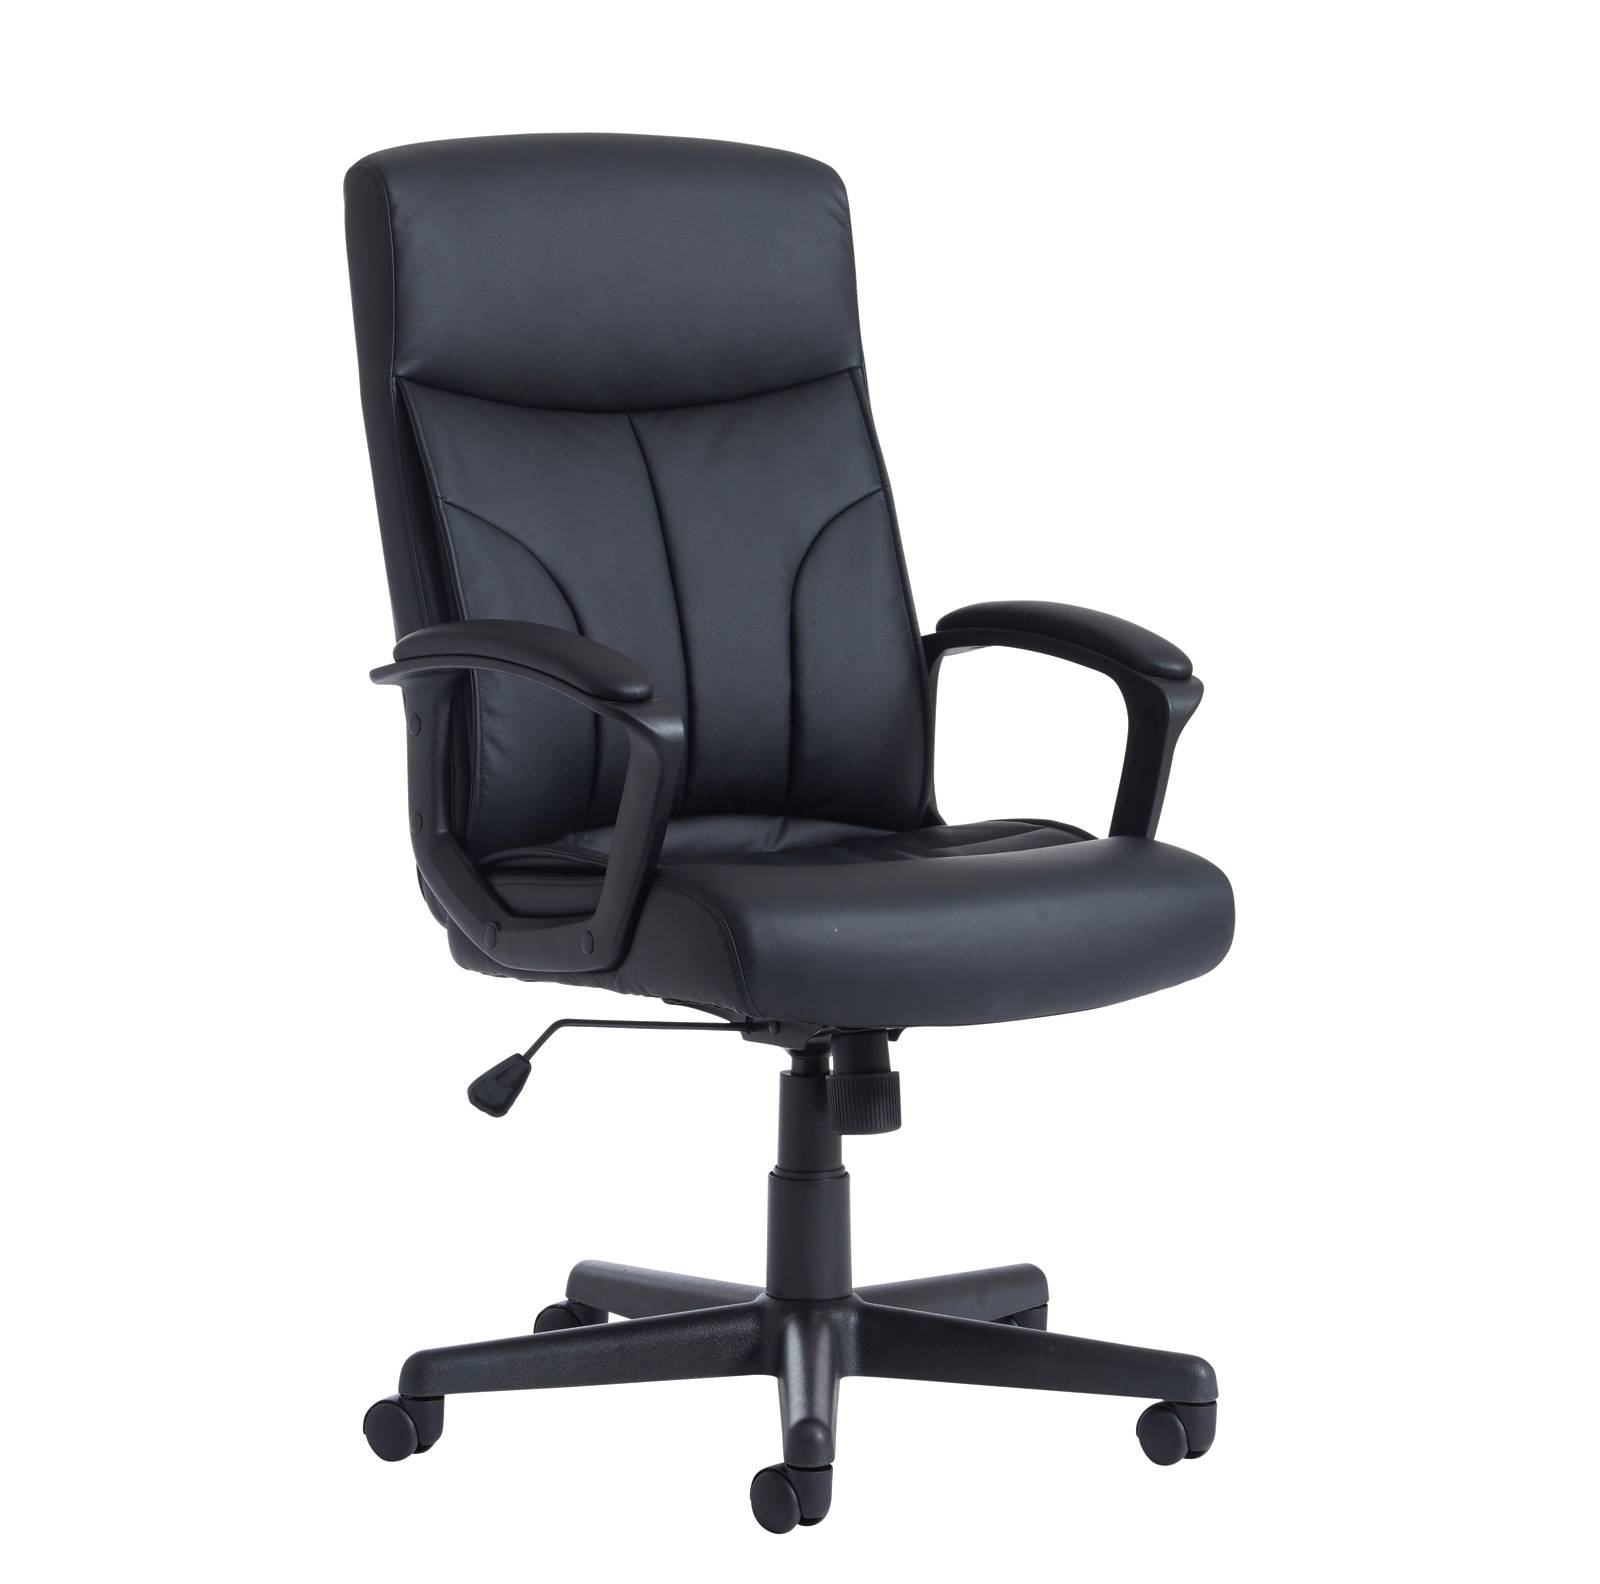 Brompton high back managers chair - black faux leather